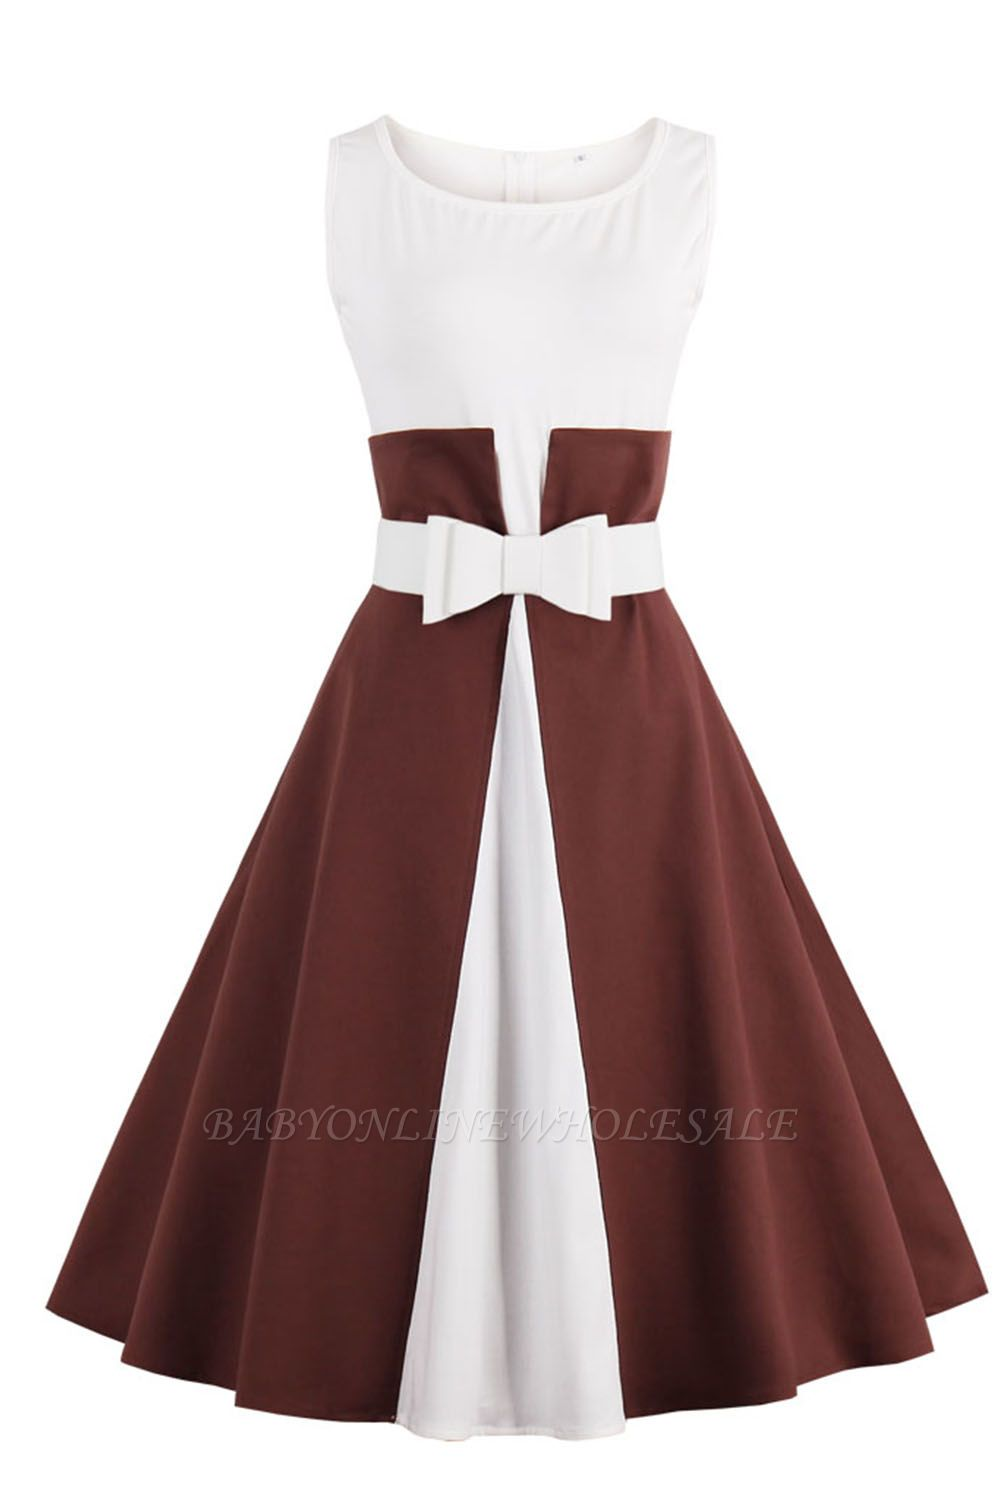 Ronni | Vintage A Line Two-toned 1950s Dress with Bow